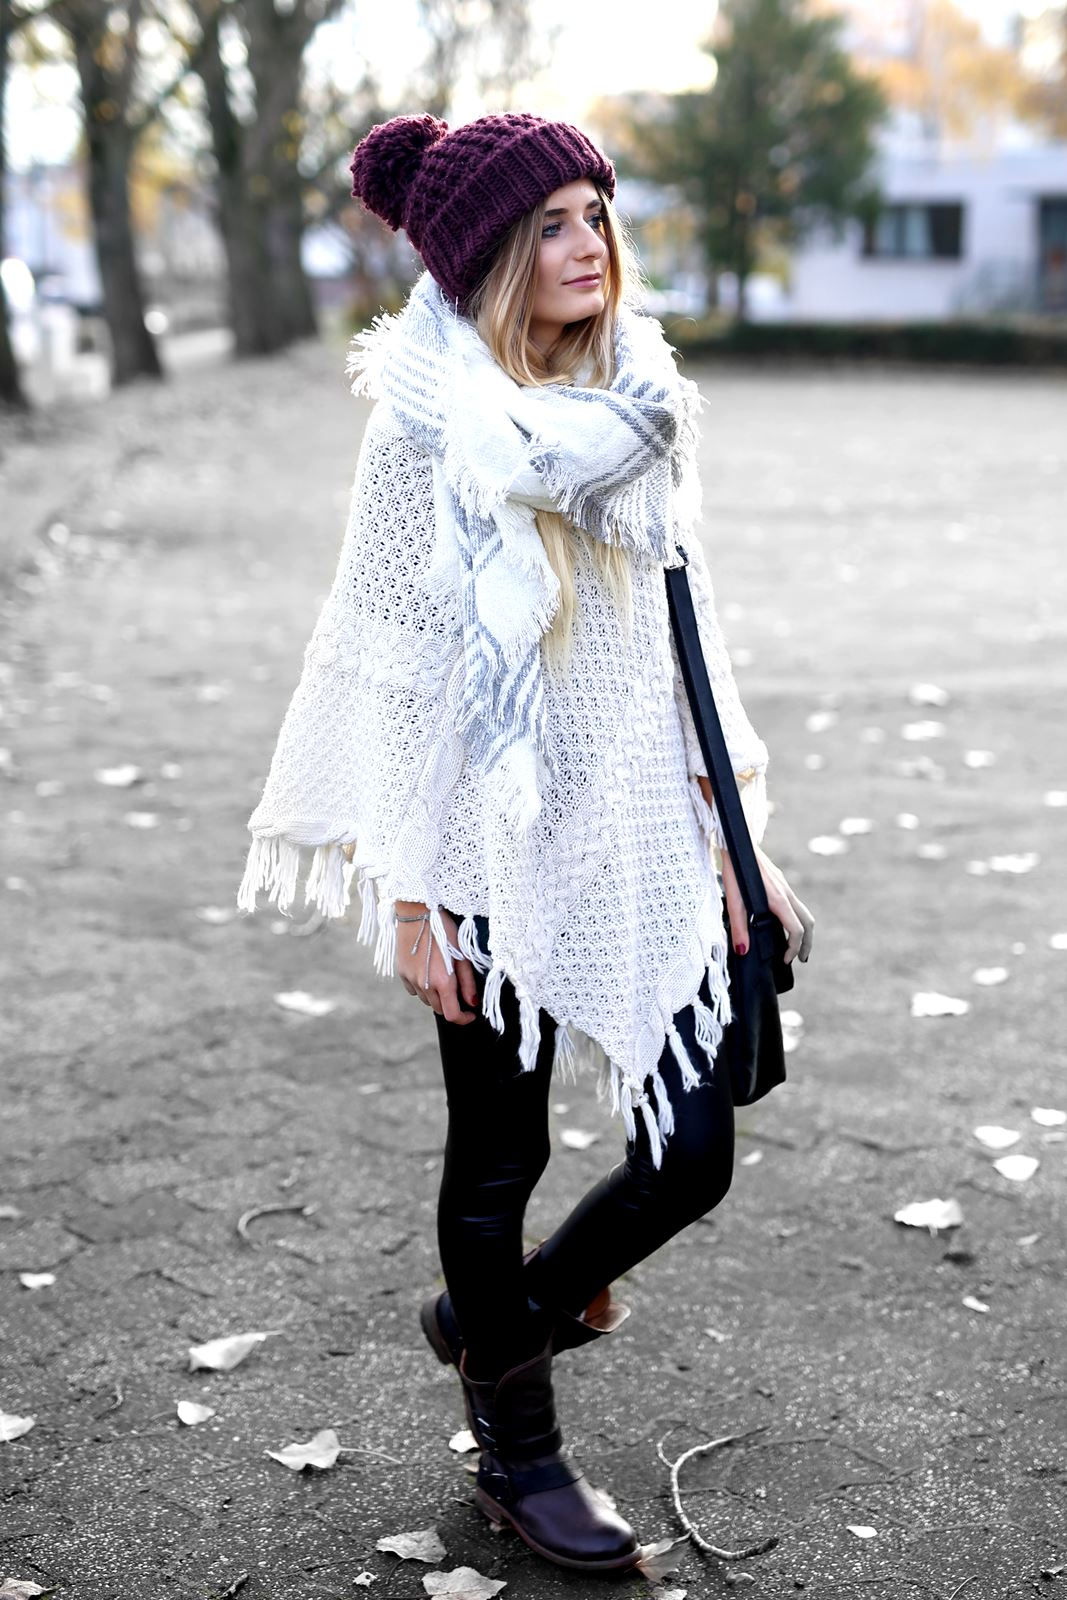 modeblog-german-fashion-blog-herbst-outfit-poncho-xxl-schal-7